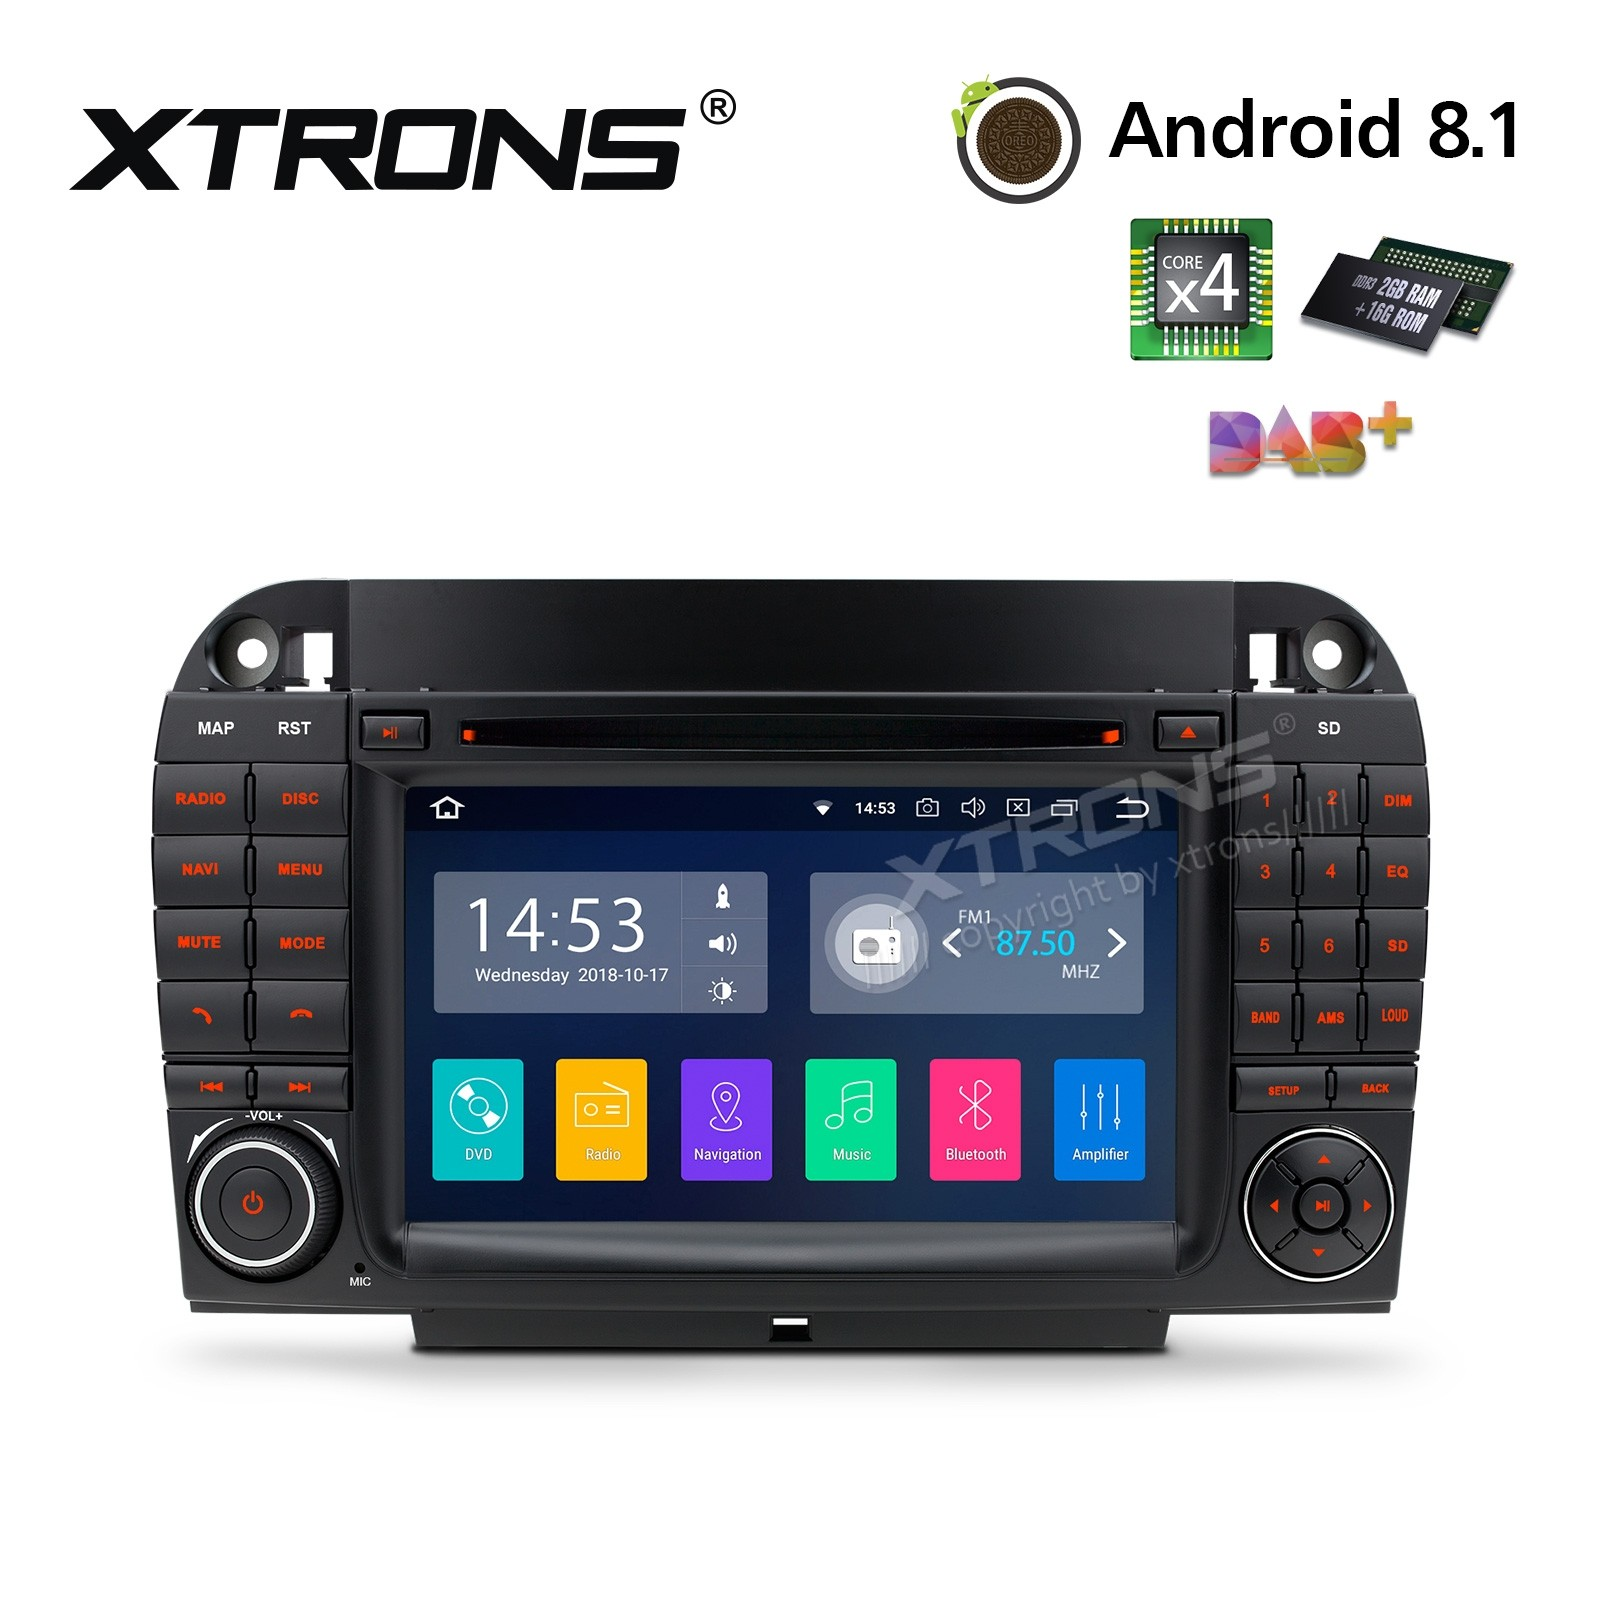 "7""Android 8.1 Quad Core 16GB ROM + 2G RAM car stereo multimedia navigation system with Full RCA Output Costom Fit for Mercedes-Benz"